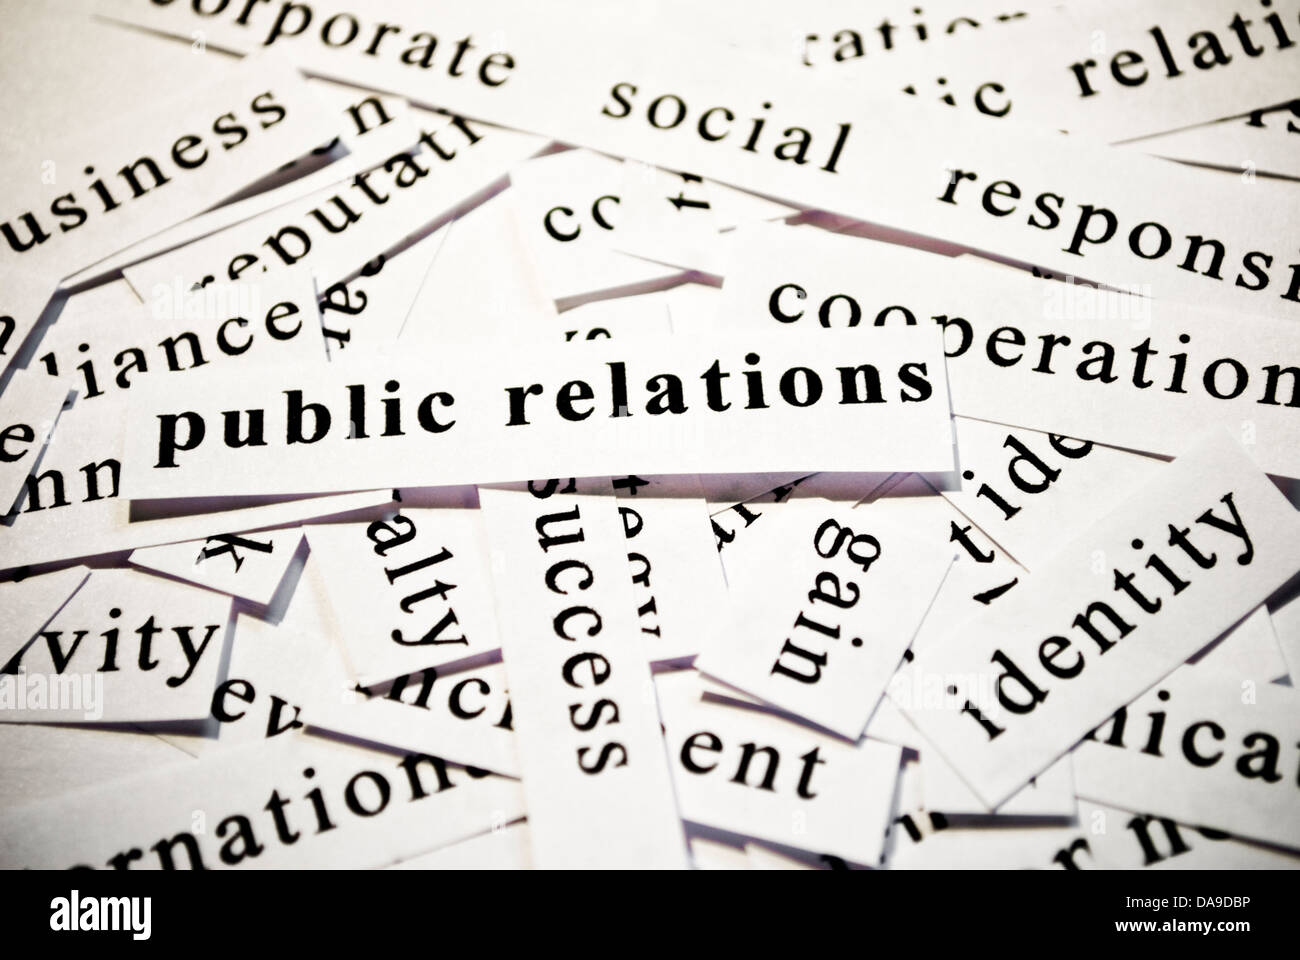 Public relations. Concept of cutout words related with business. - Stock Image